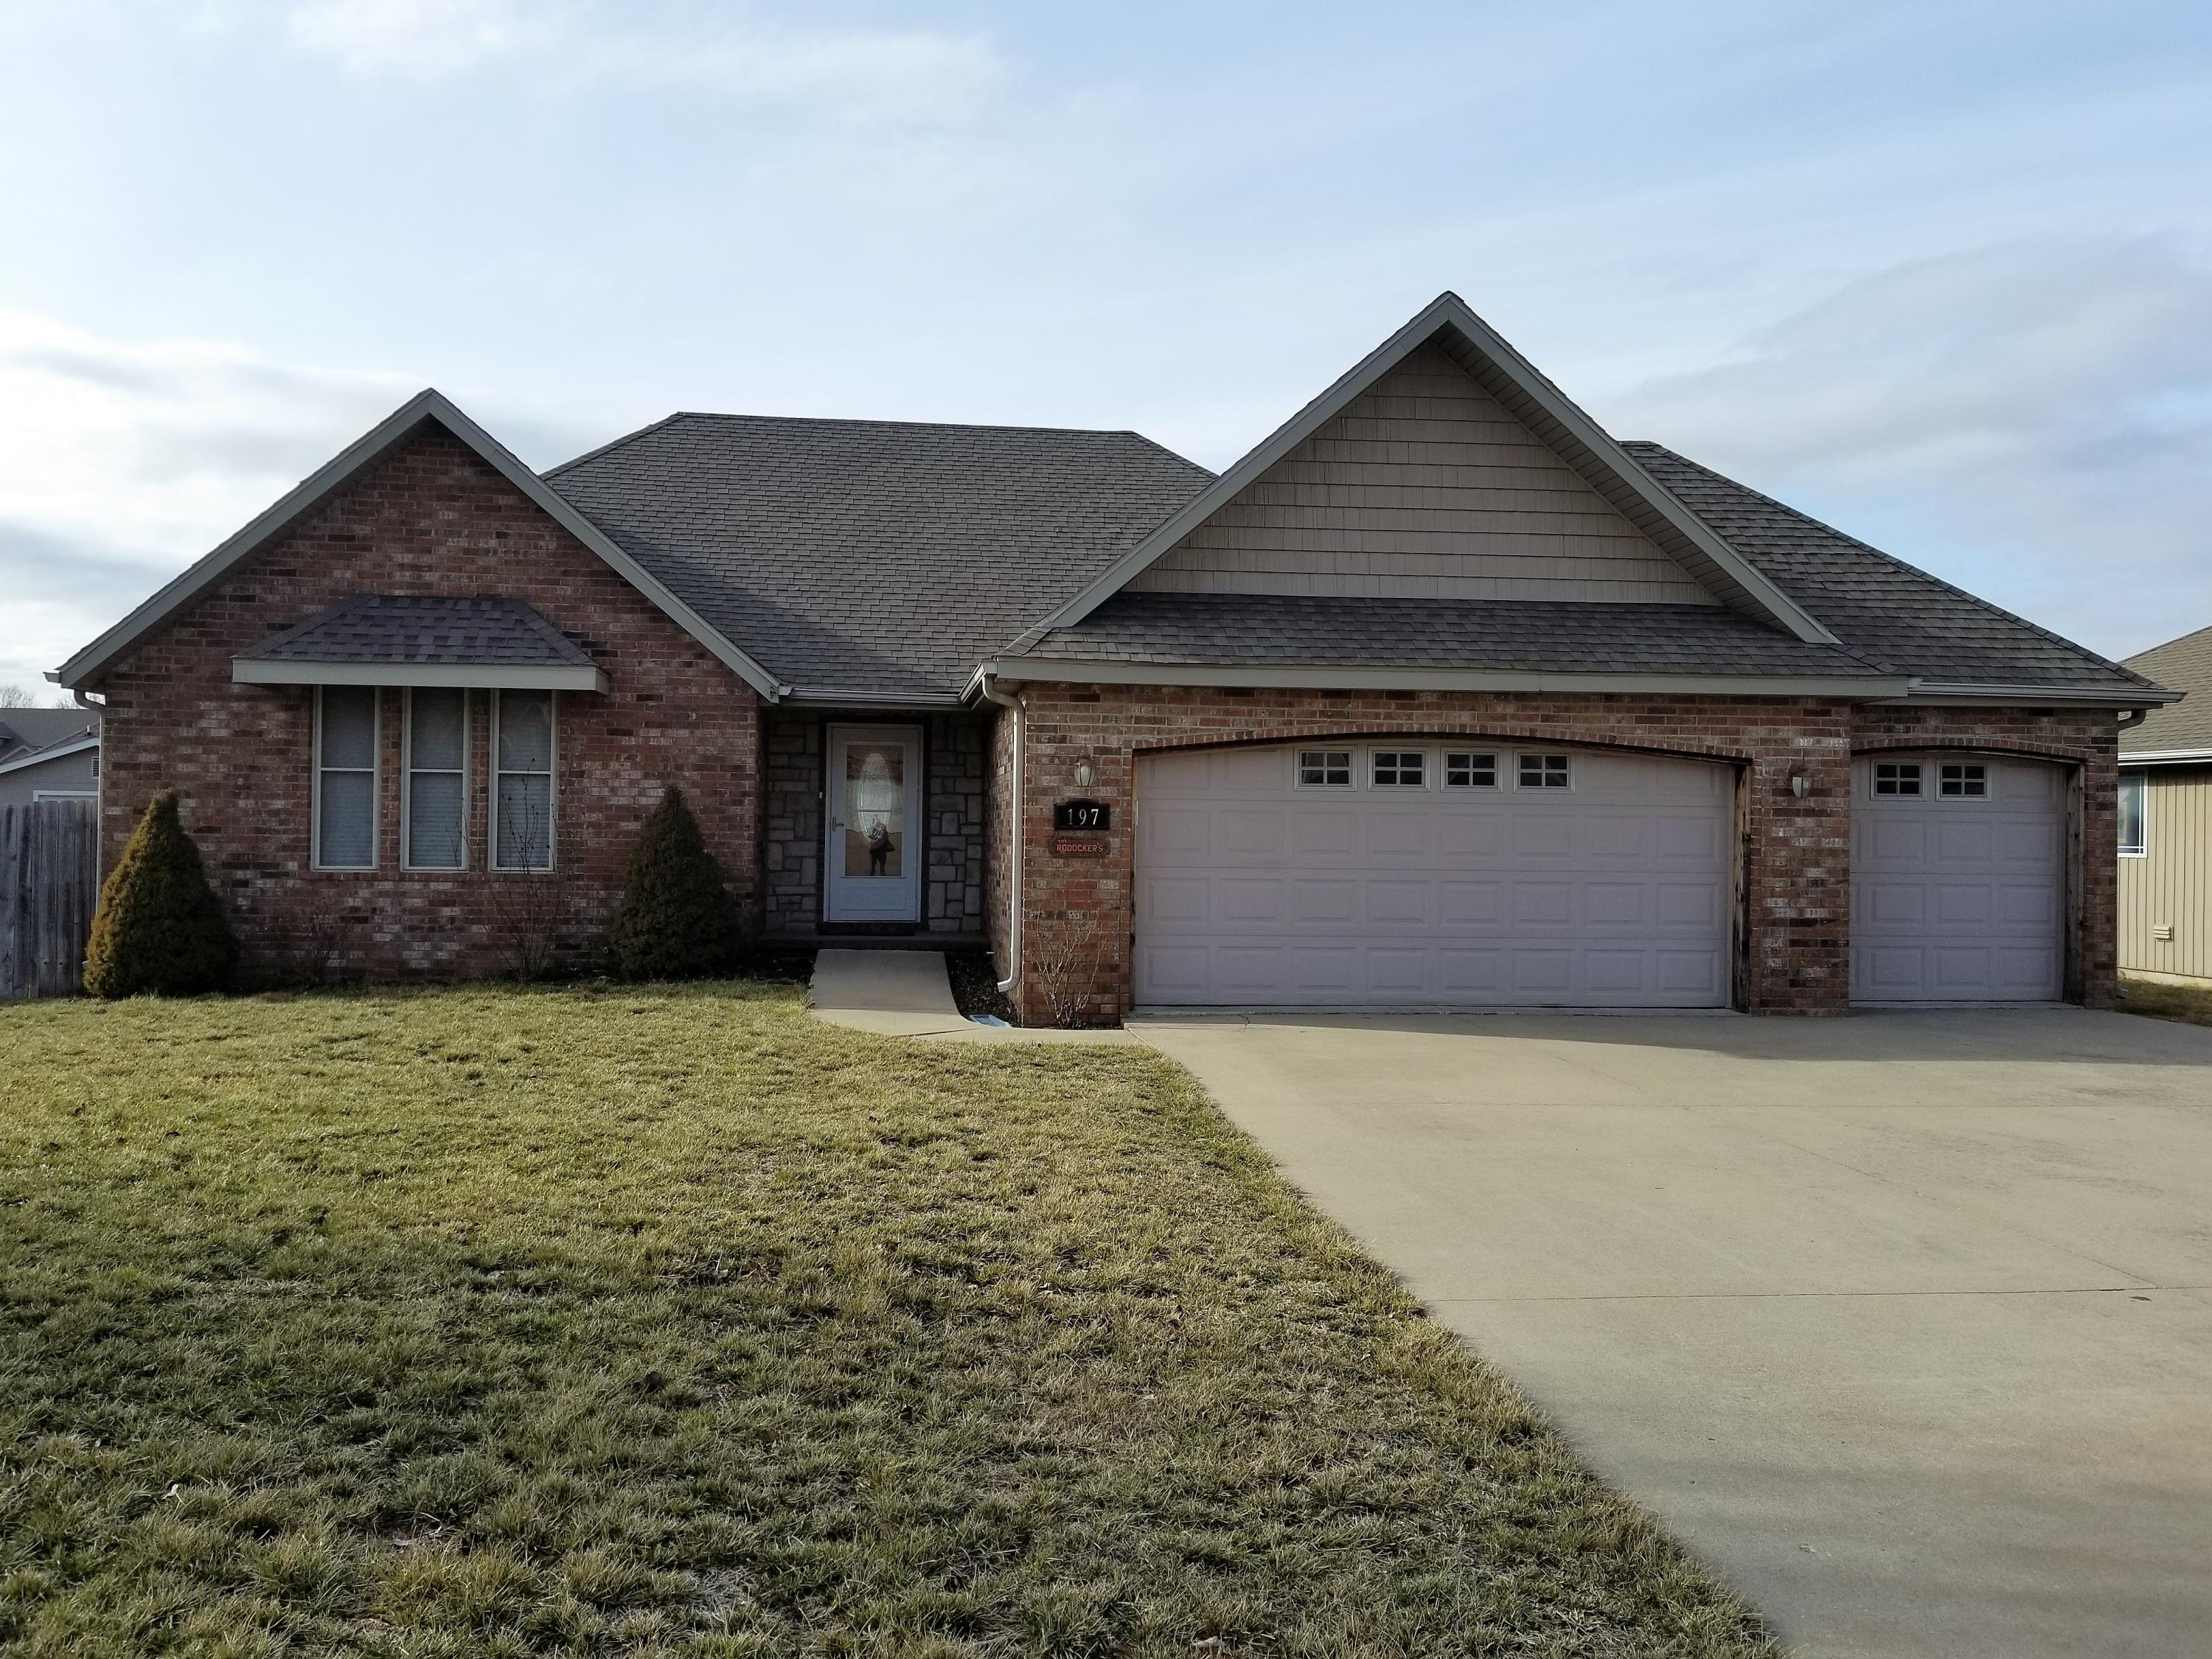 197 Sparrow Lane Willard, MO 65781